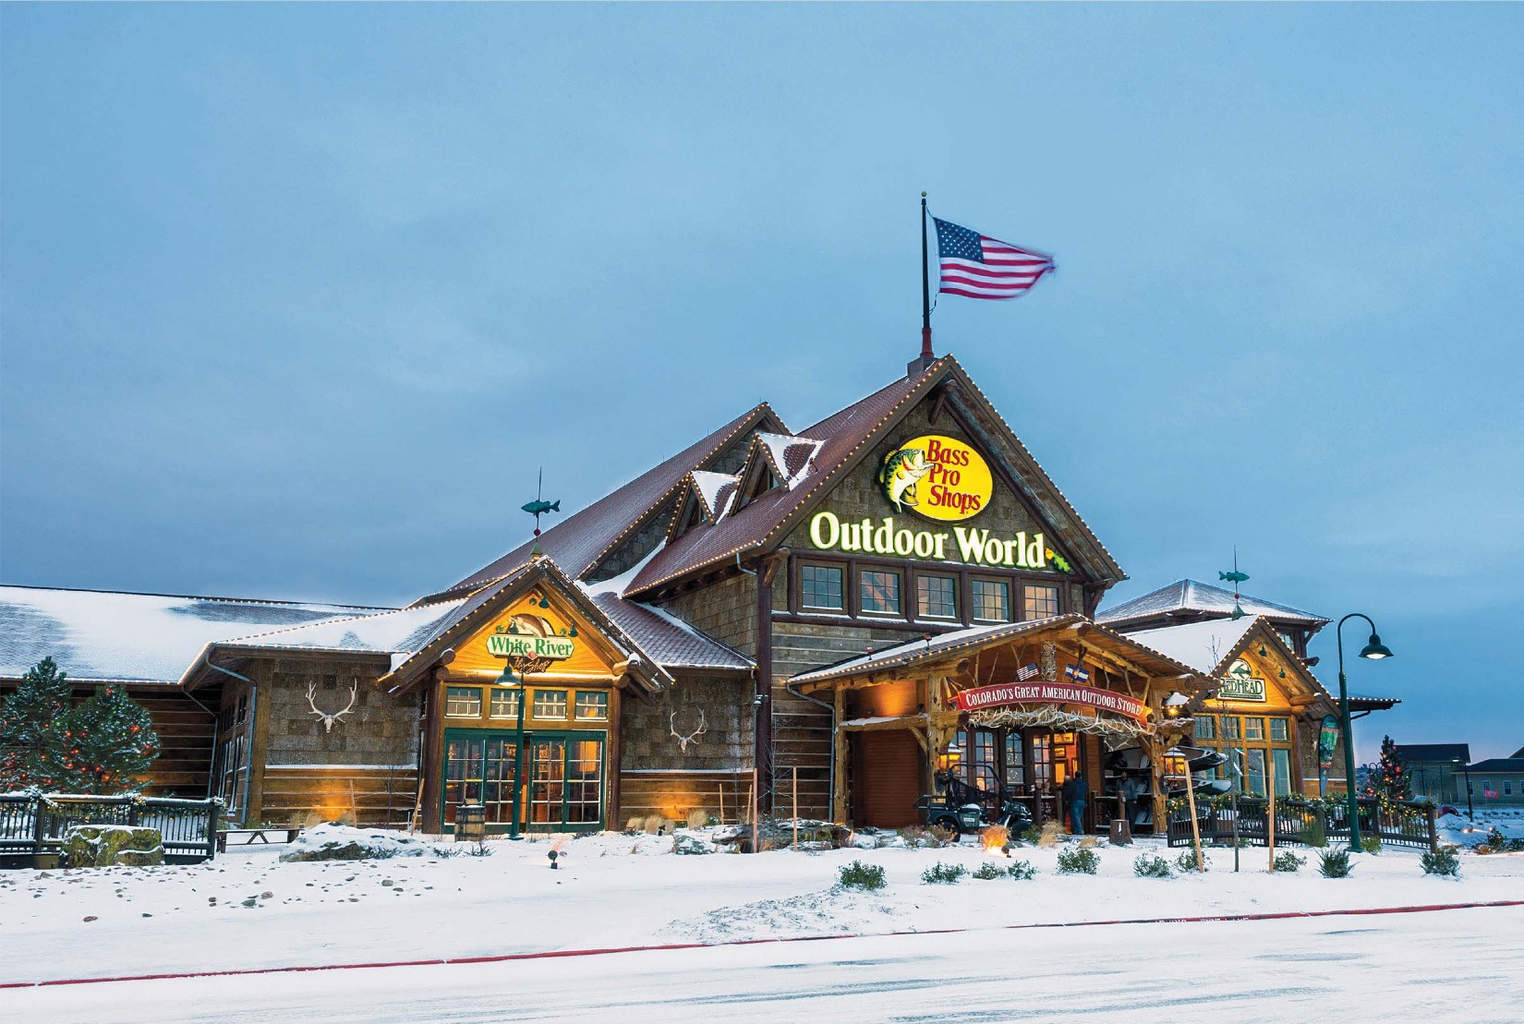 Bass Pro Shops Outdoor World Architect Colorado